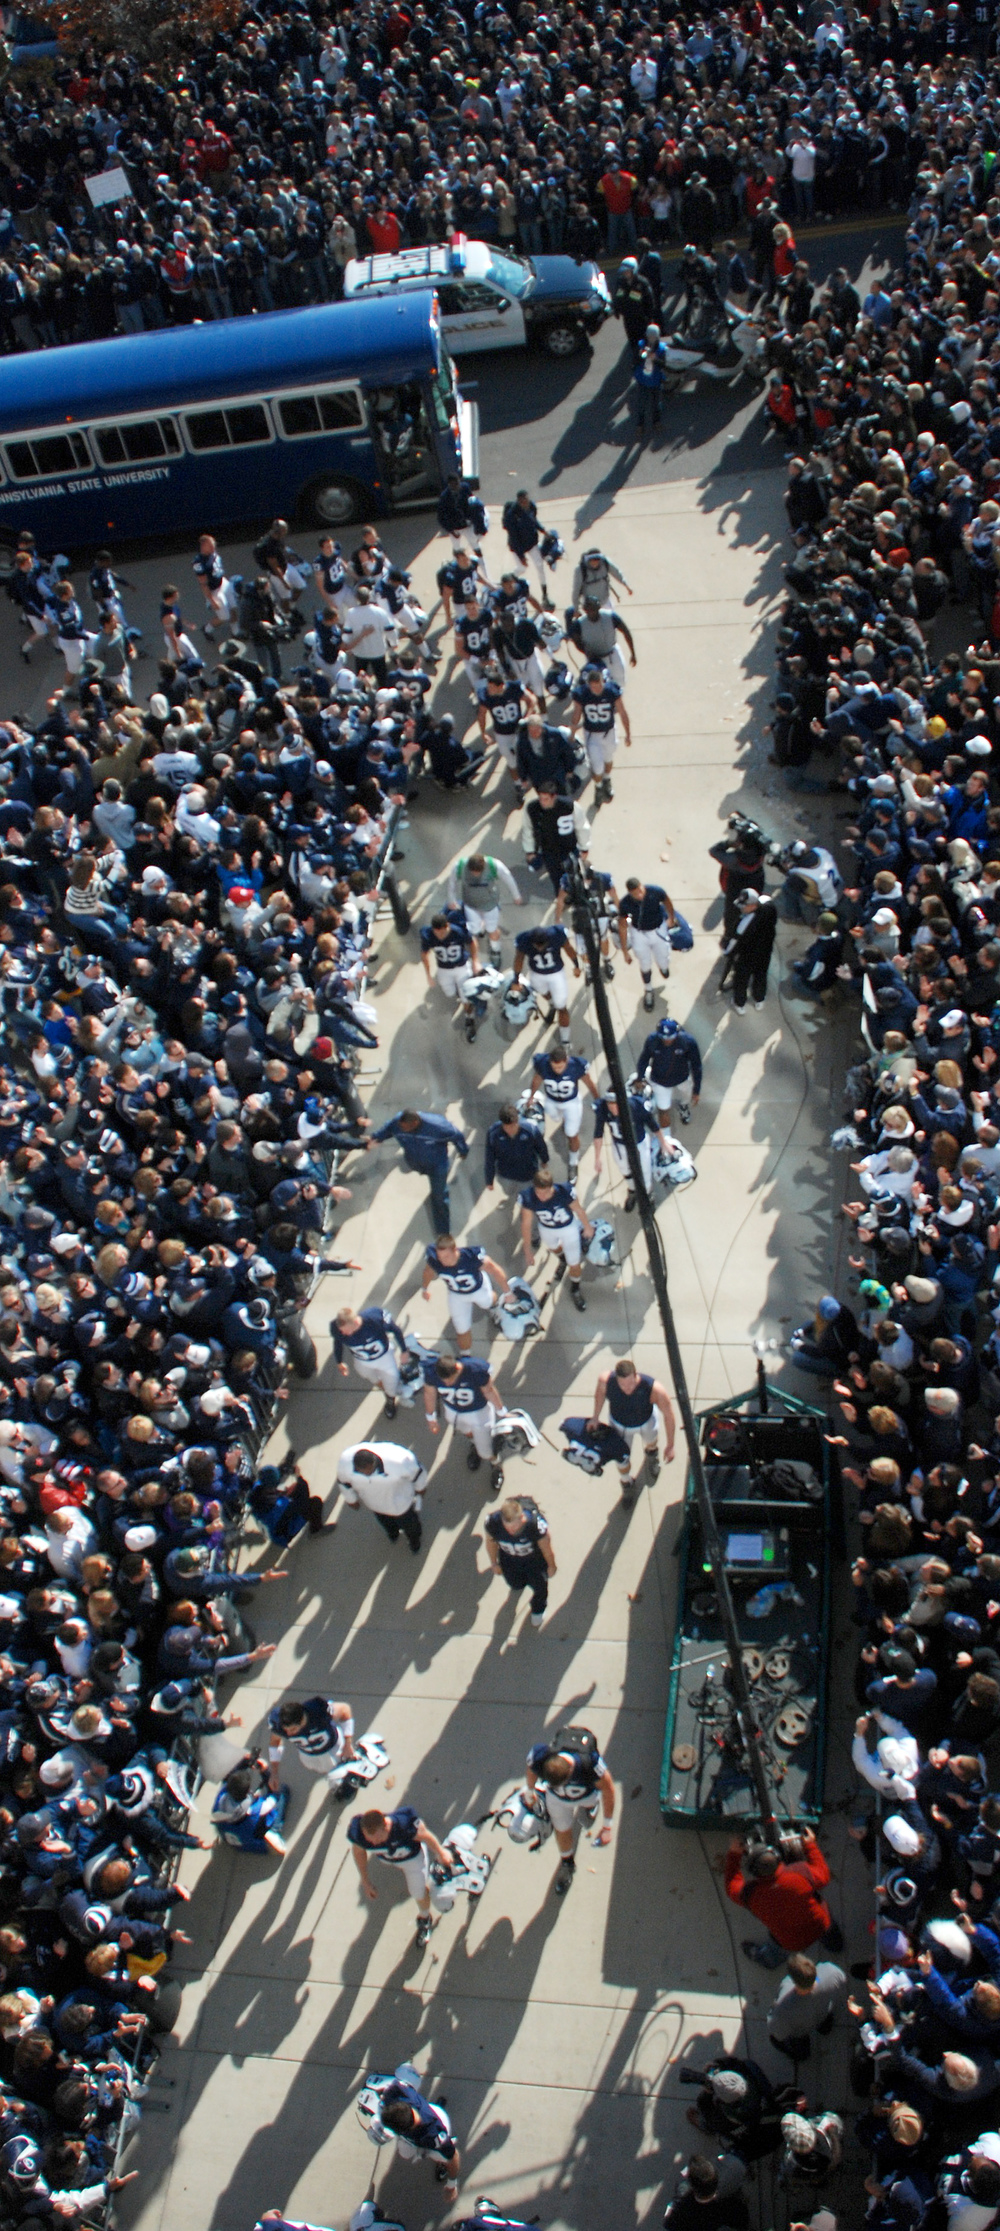 Football players step off their buses to and greet fans as they enter the stadium before their game against Nebraska on Saturday, Nov. 12, 2011.